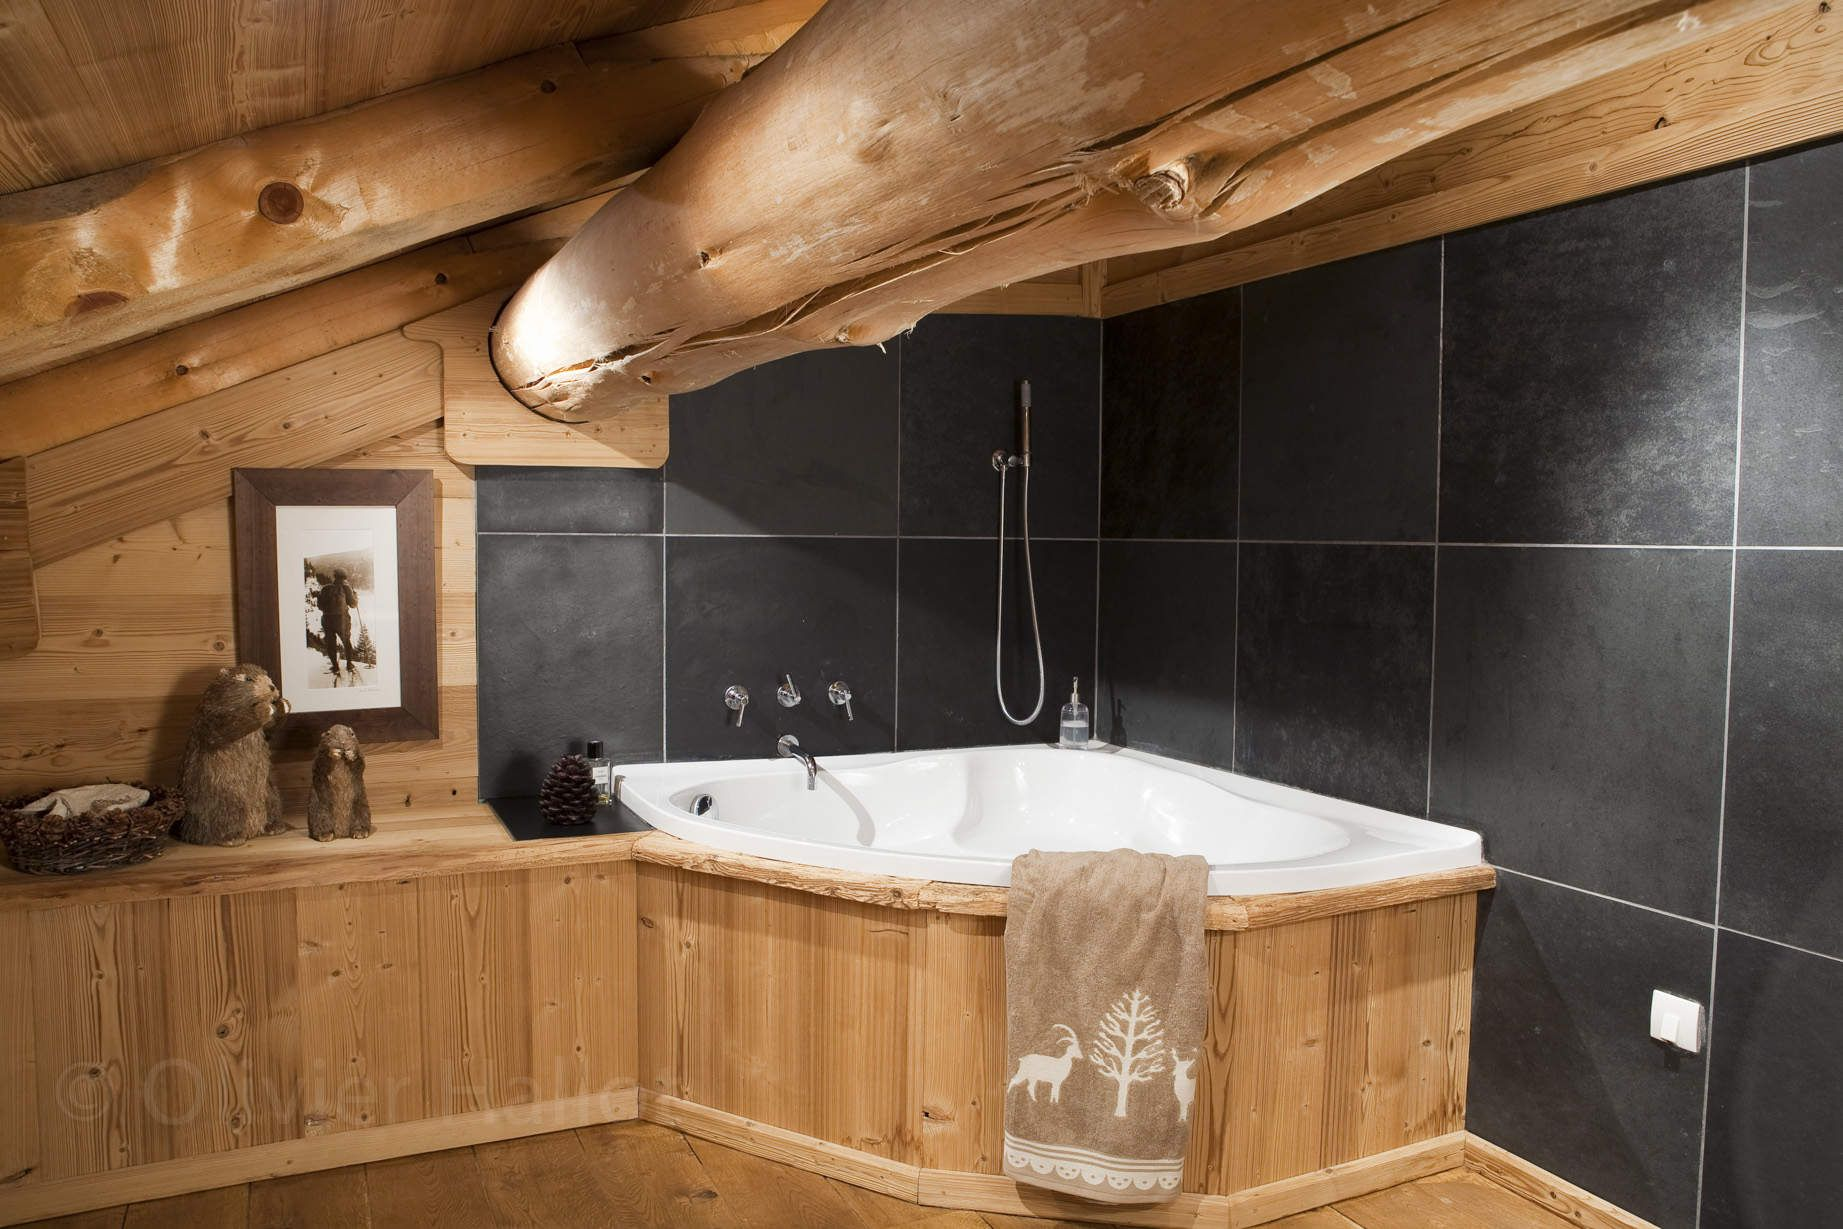 chalet les pins salle de bains dekoideen pinterest chalets and alsace. Black Bedroom Furniture Sets. Home Design Ideas